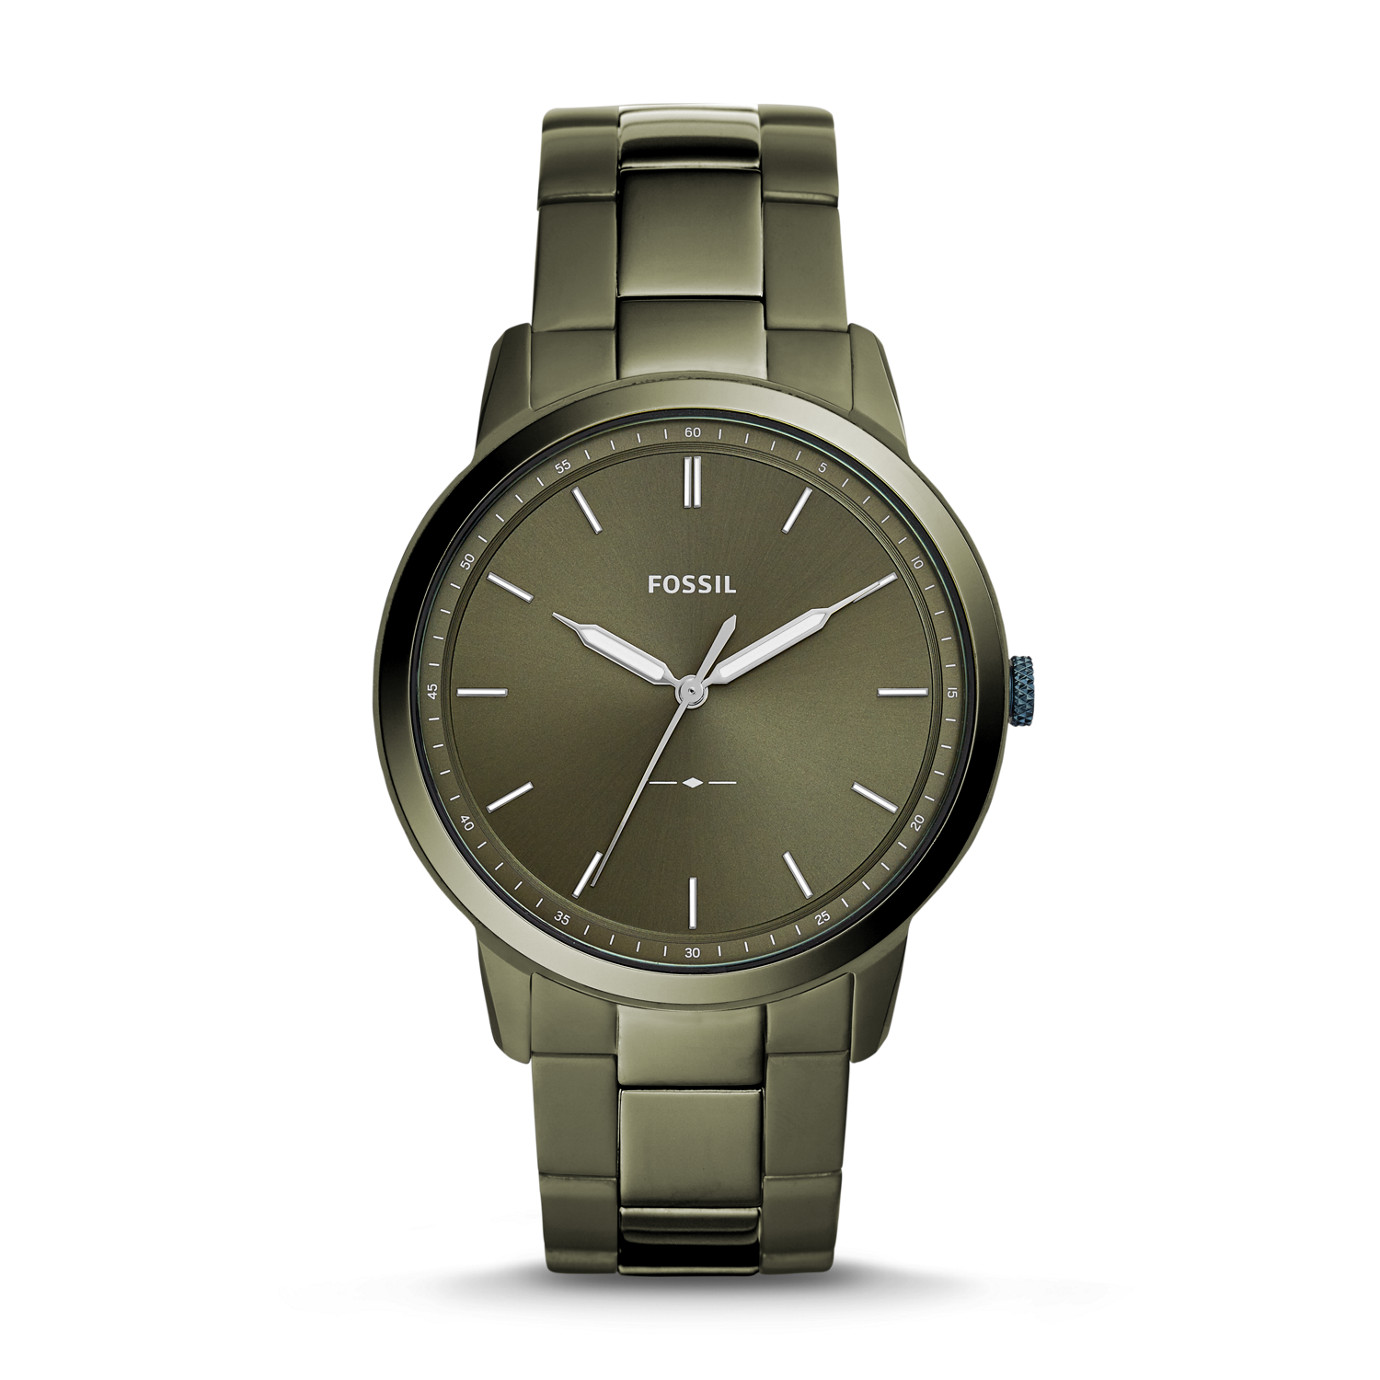 The Minimalist Three-Hand Olive Gray Stainless Steel Watch